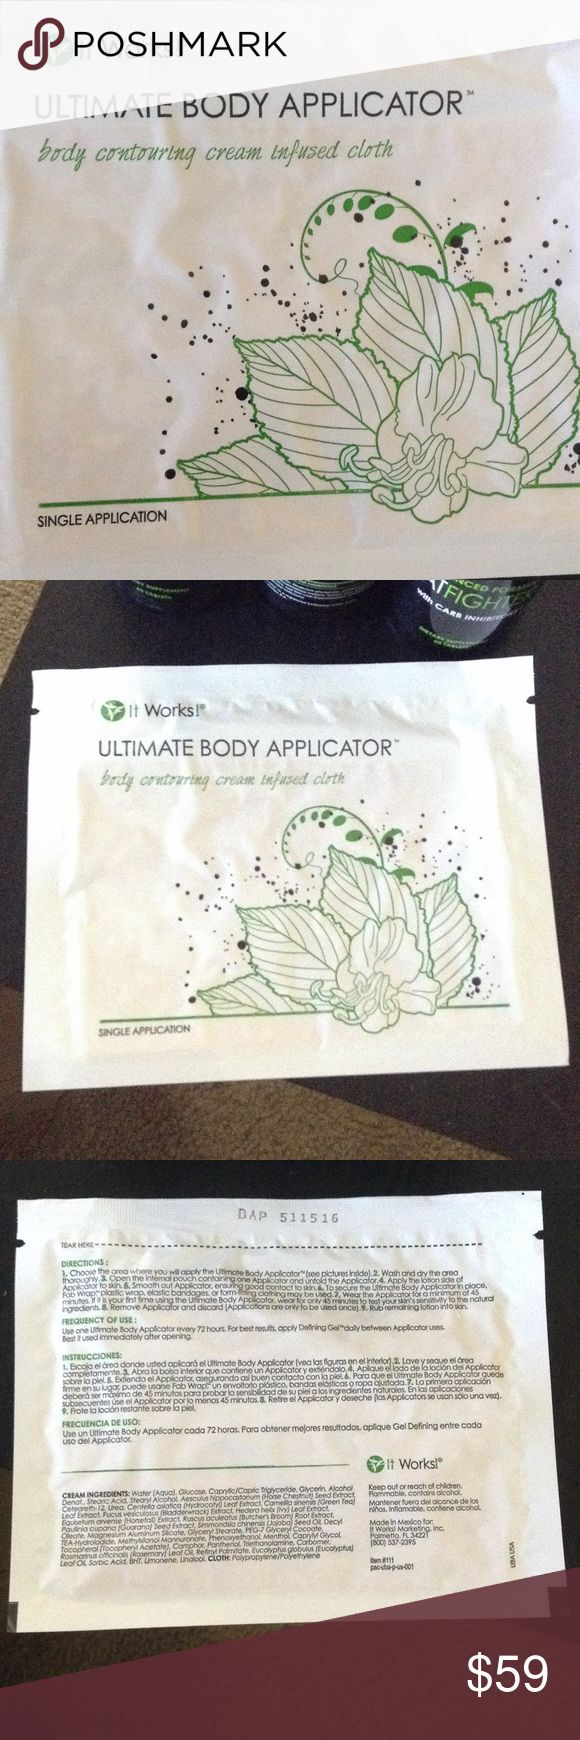 Ultimate Body Applicator Body contouring cream infused cloth. 1 pack. It Works Other